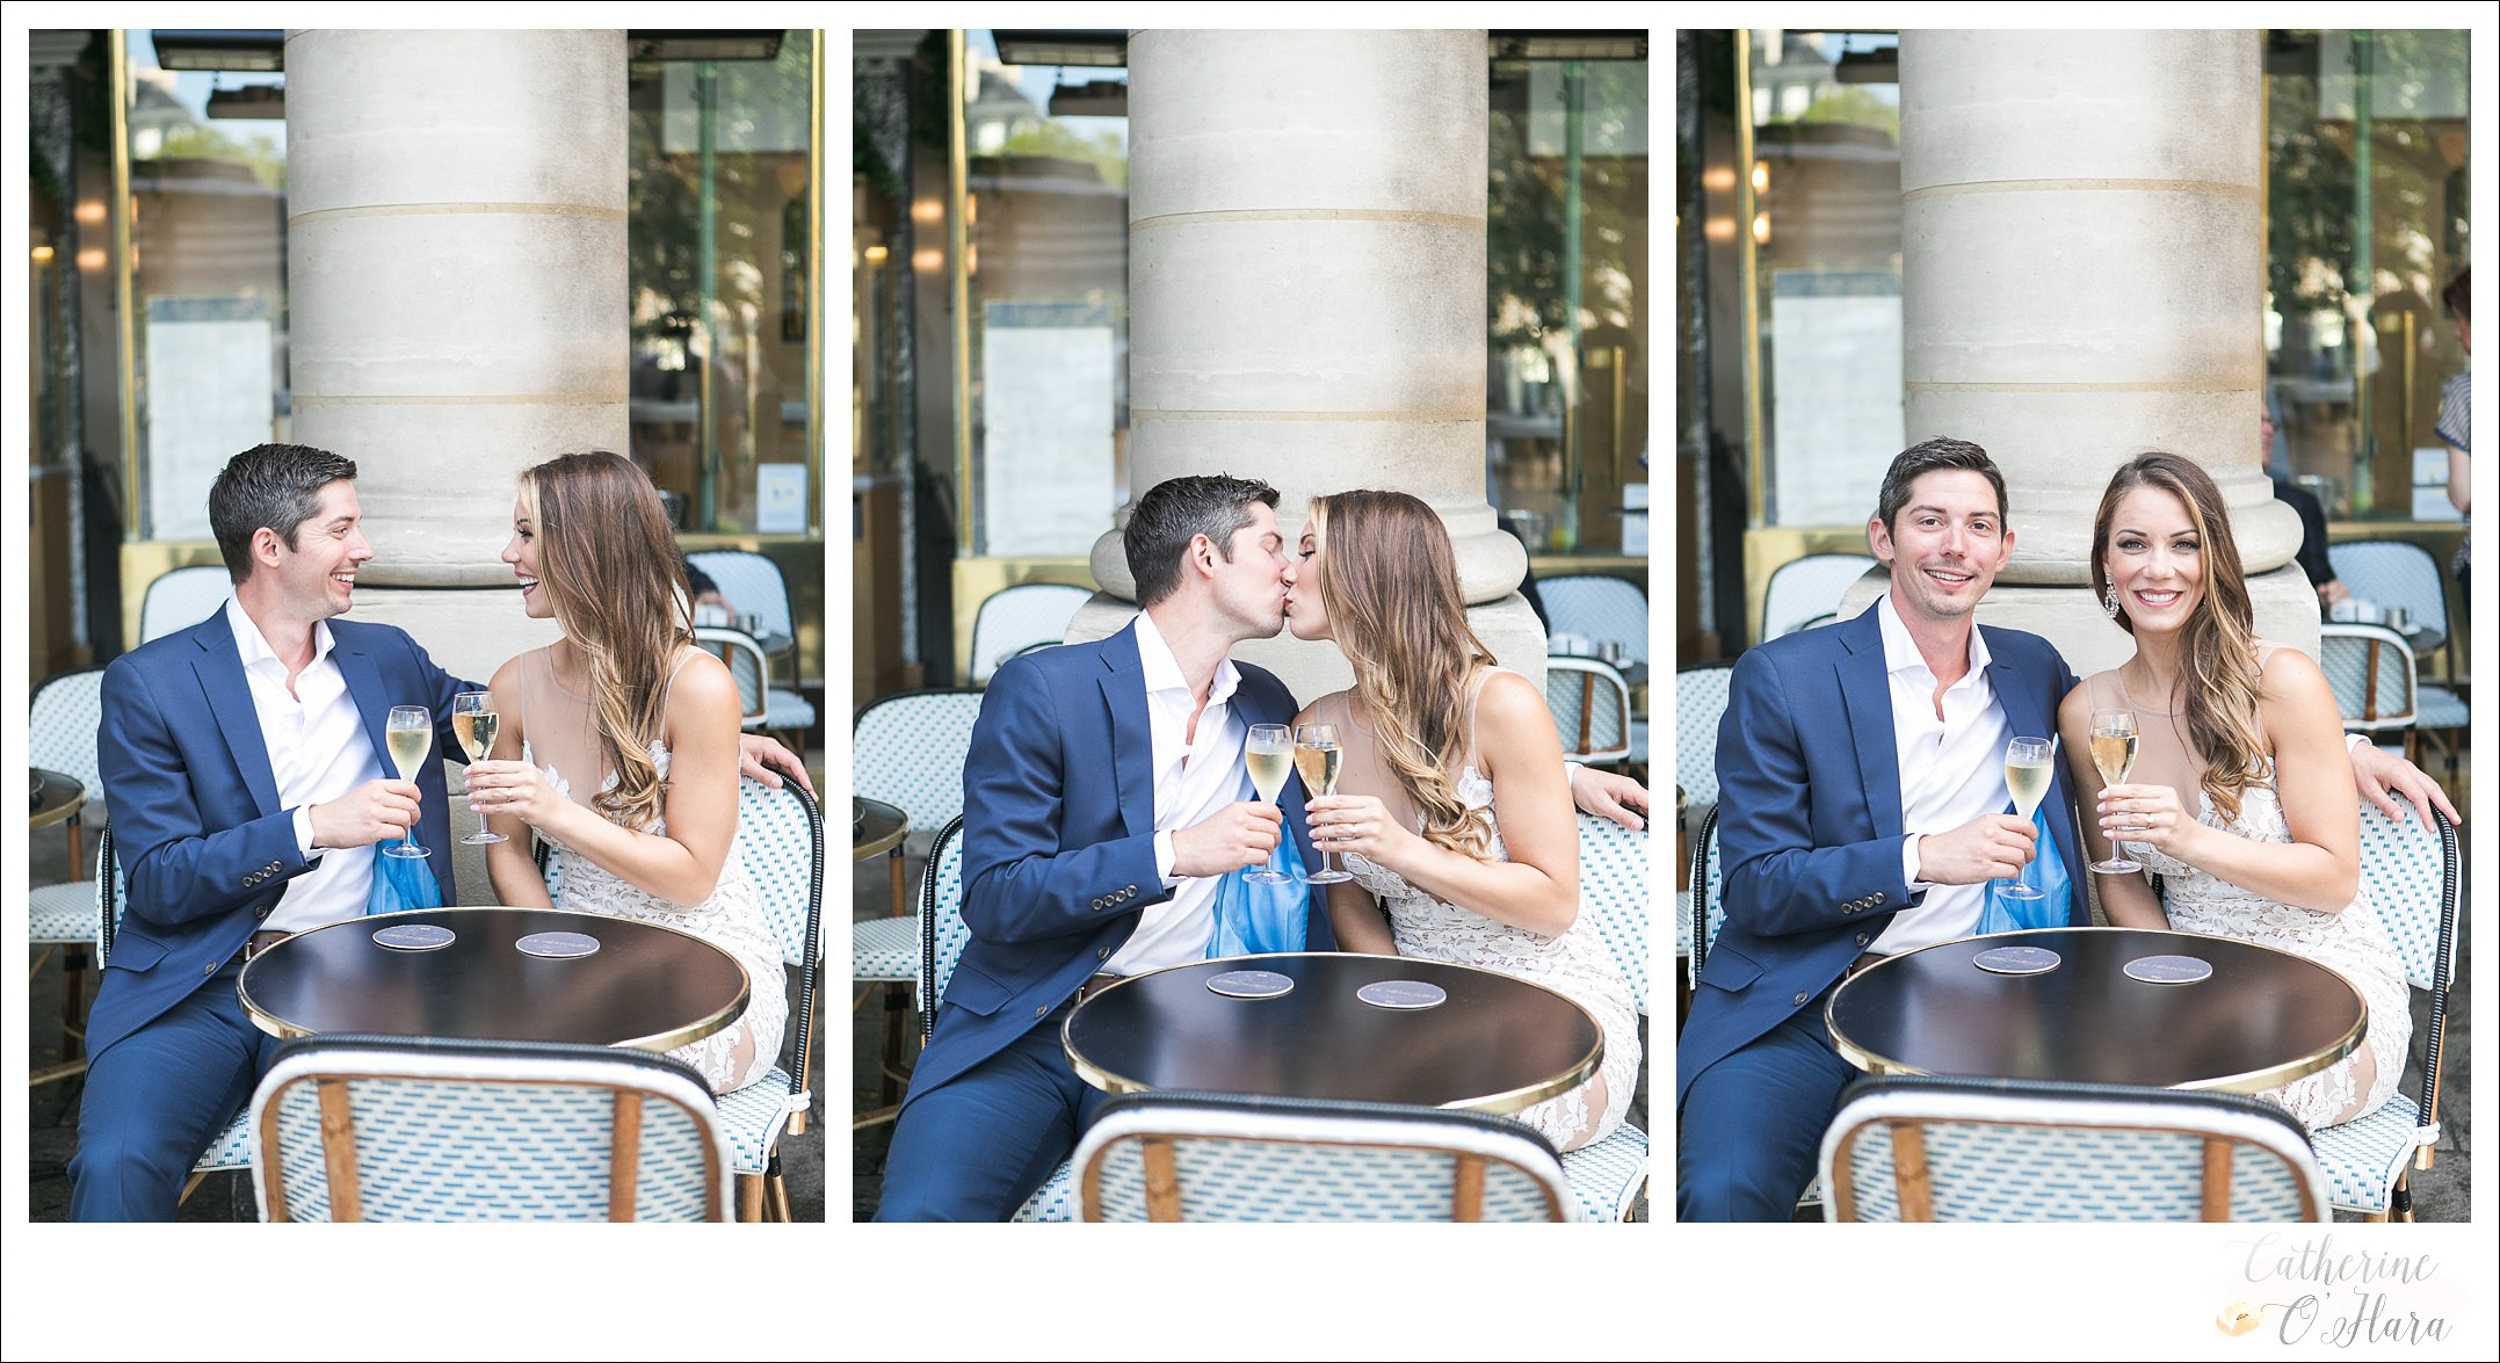 paris france engagement proposal photographer-51.jpg